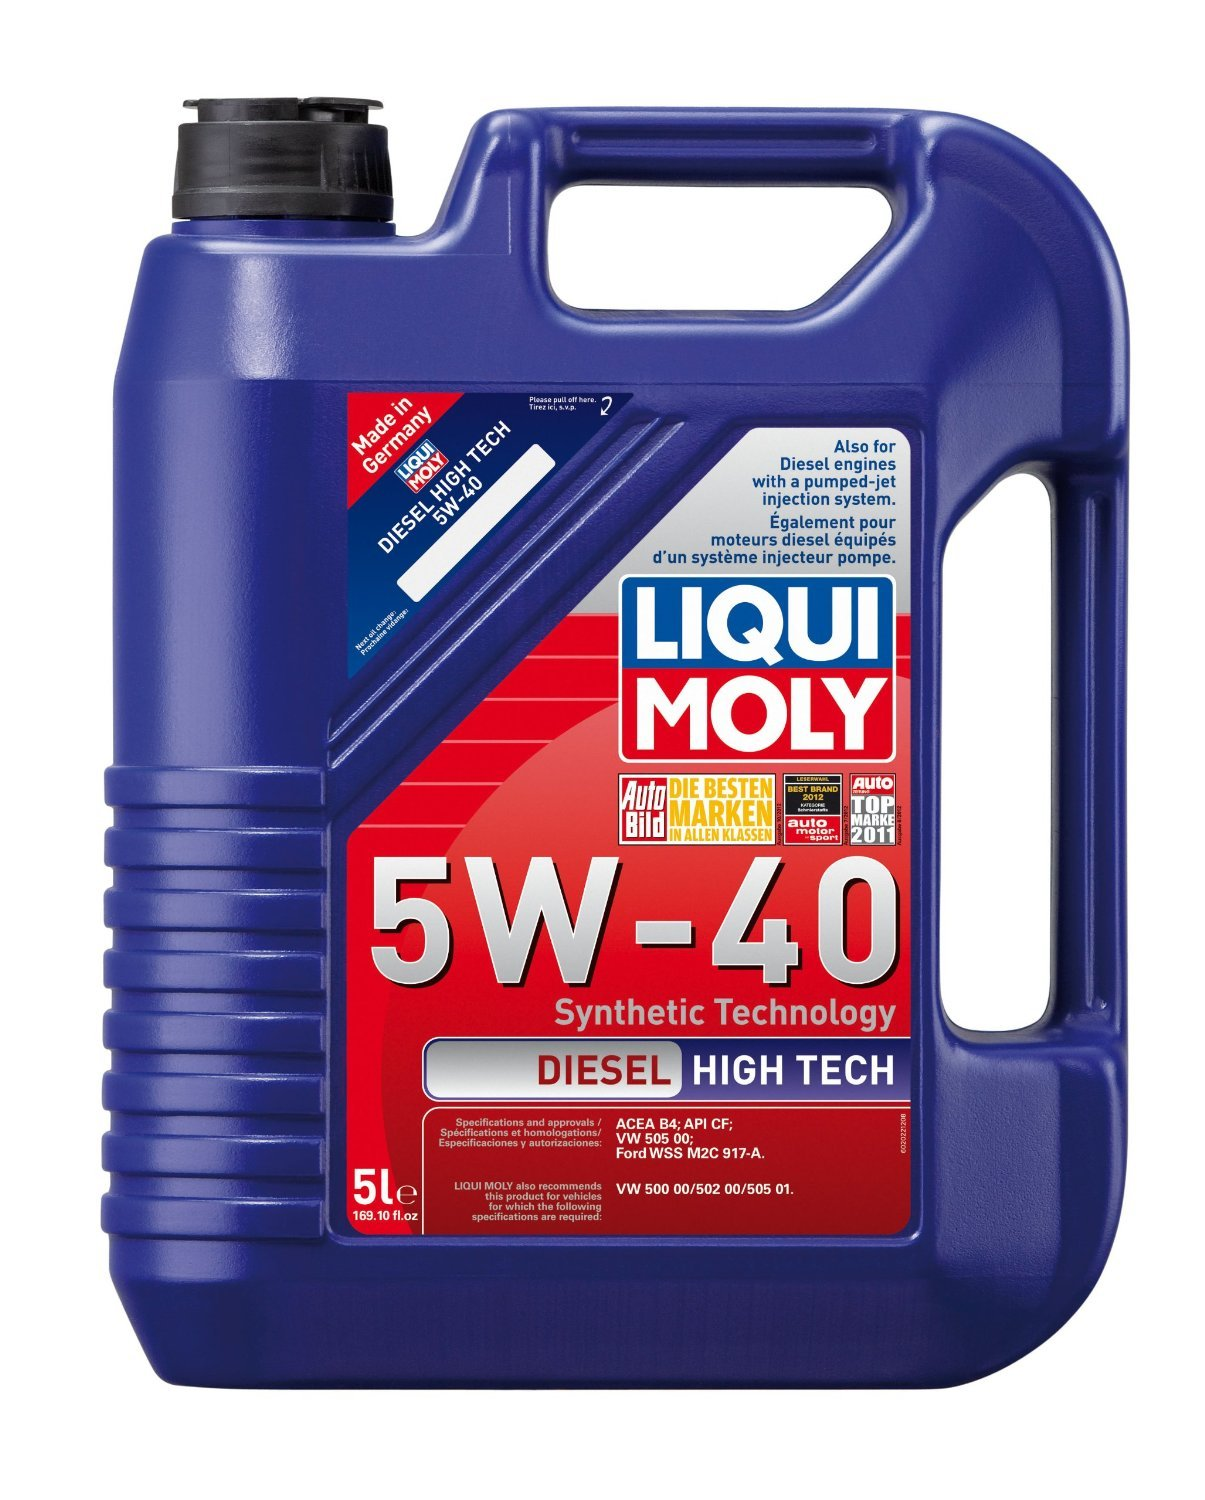 Liqui Moly (2022-4PK) Diesel High Tech Synthetic 5W-40 Motor Oil - 5 Liter, (Pack of 4)